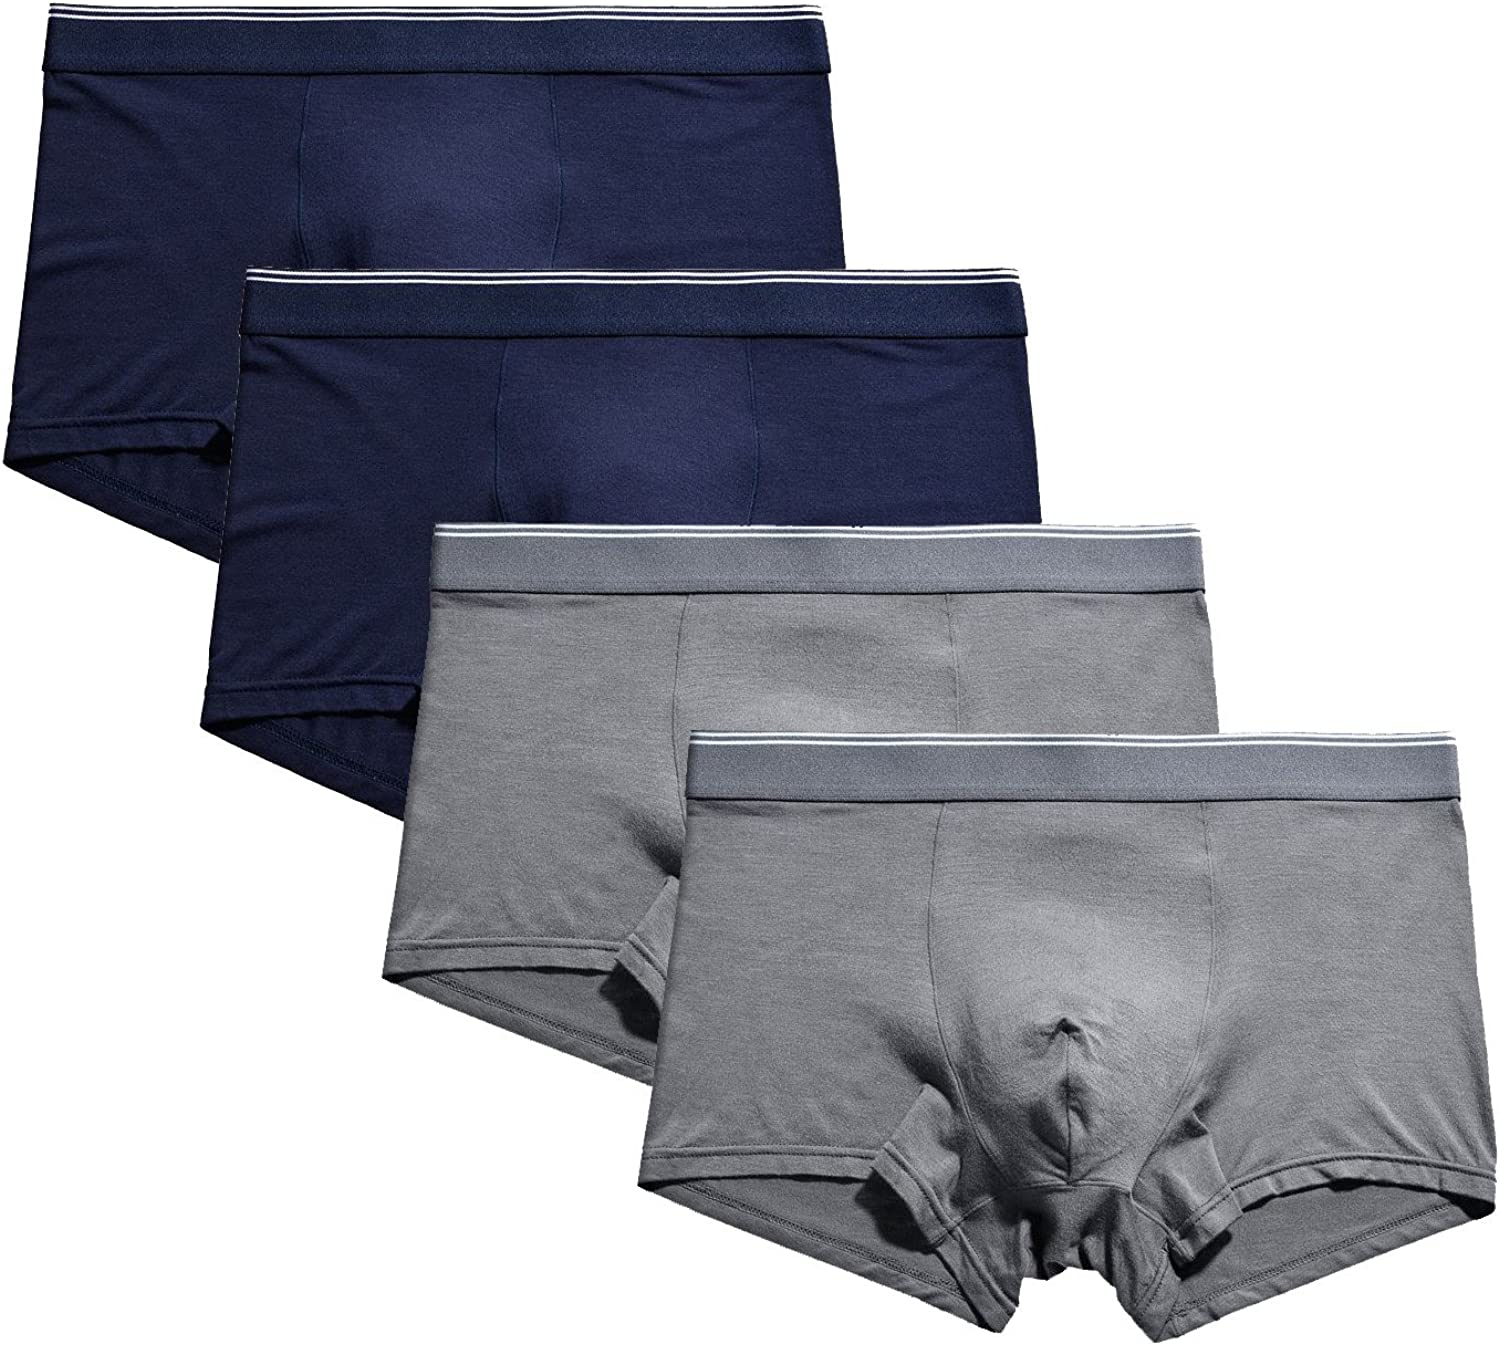 Seaoeey Boxer Briefs 4-Pack Breathable Comfort Underwear Shorts for Men and Boys